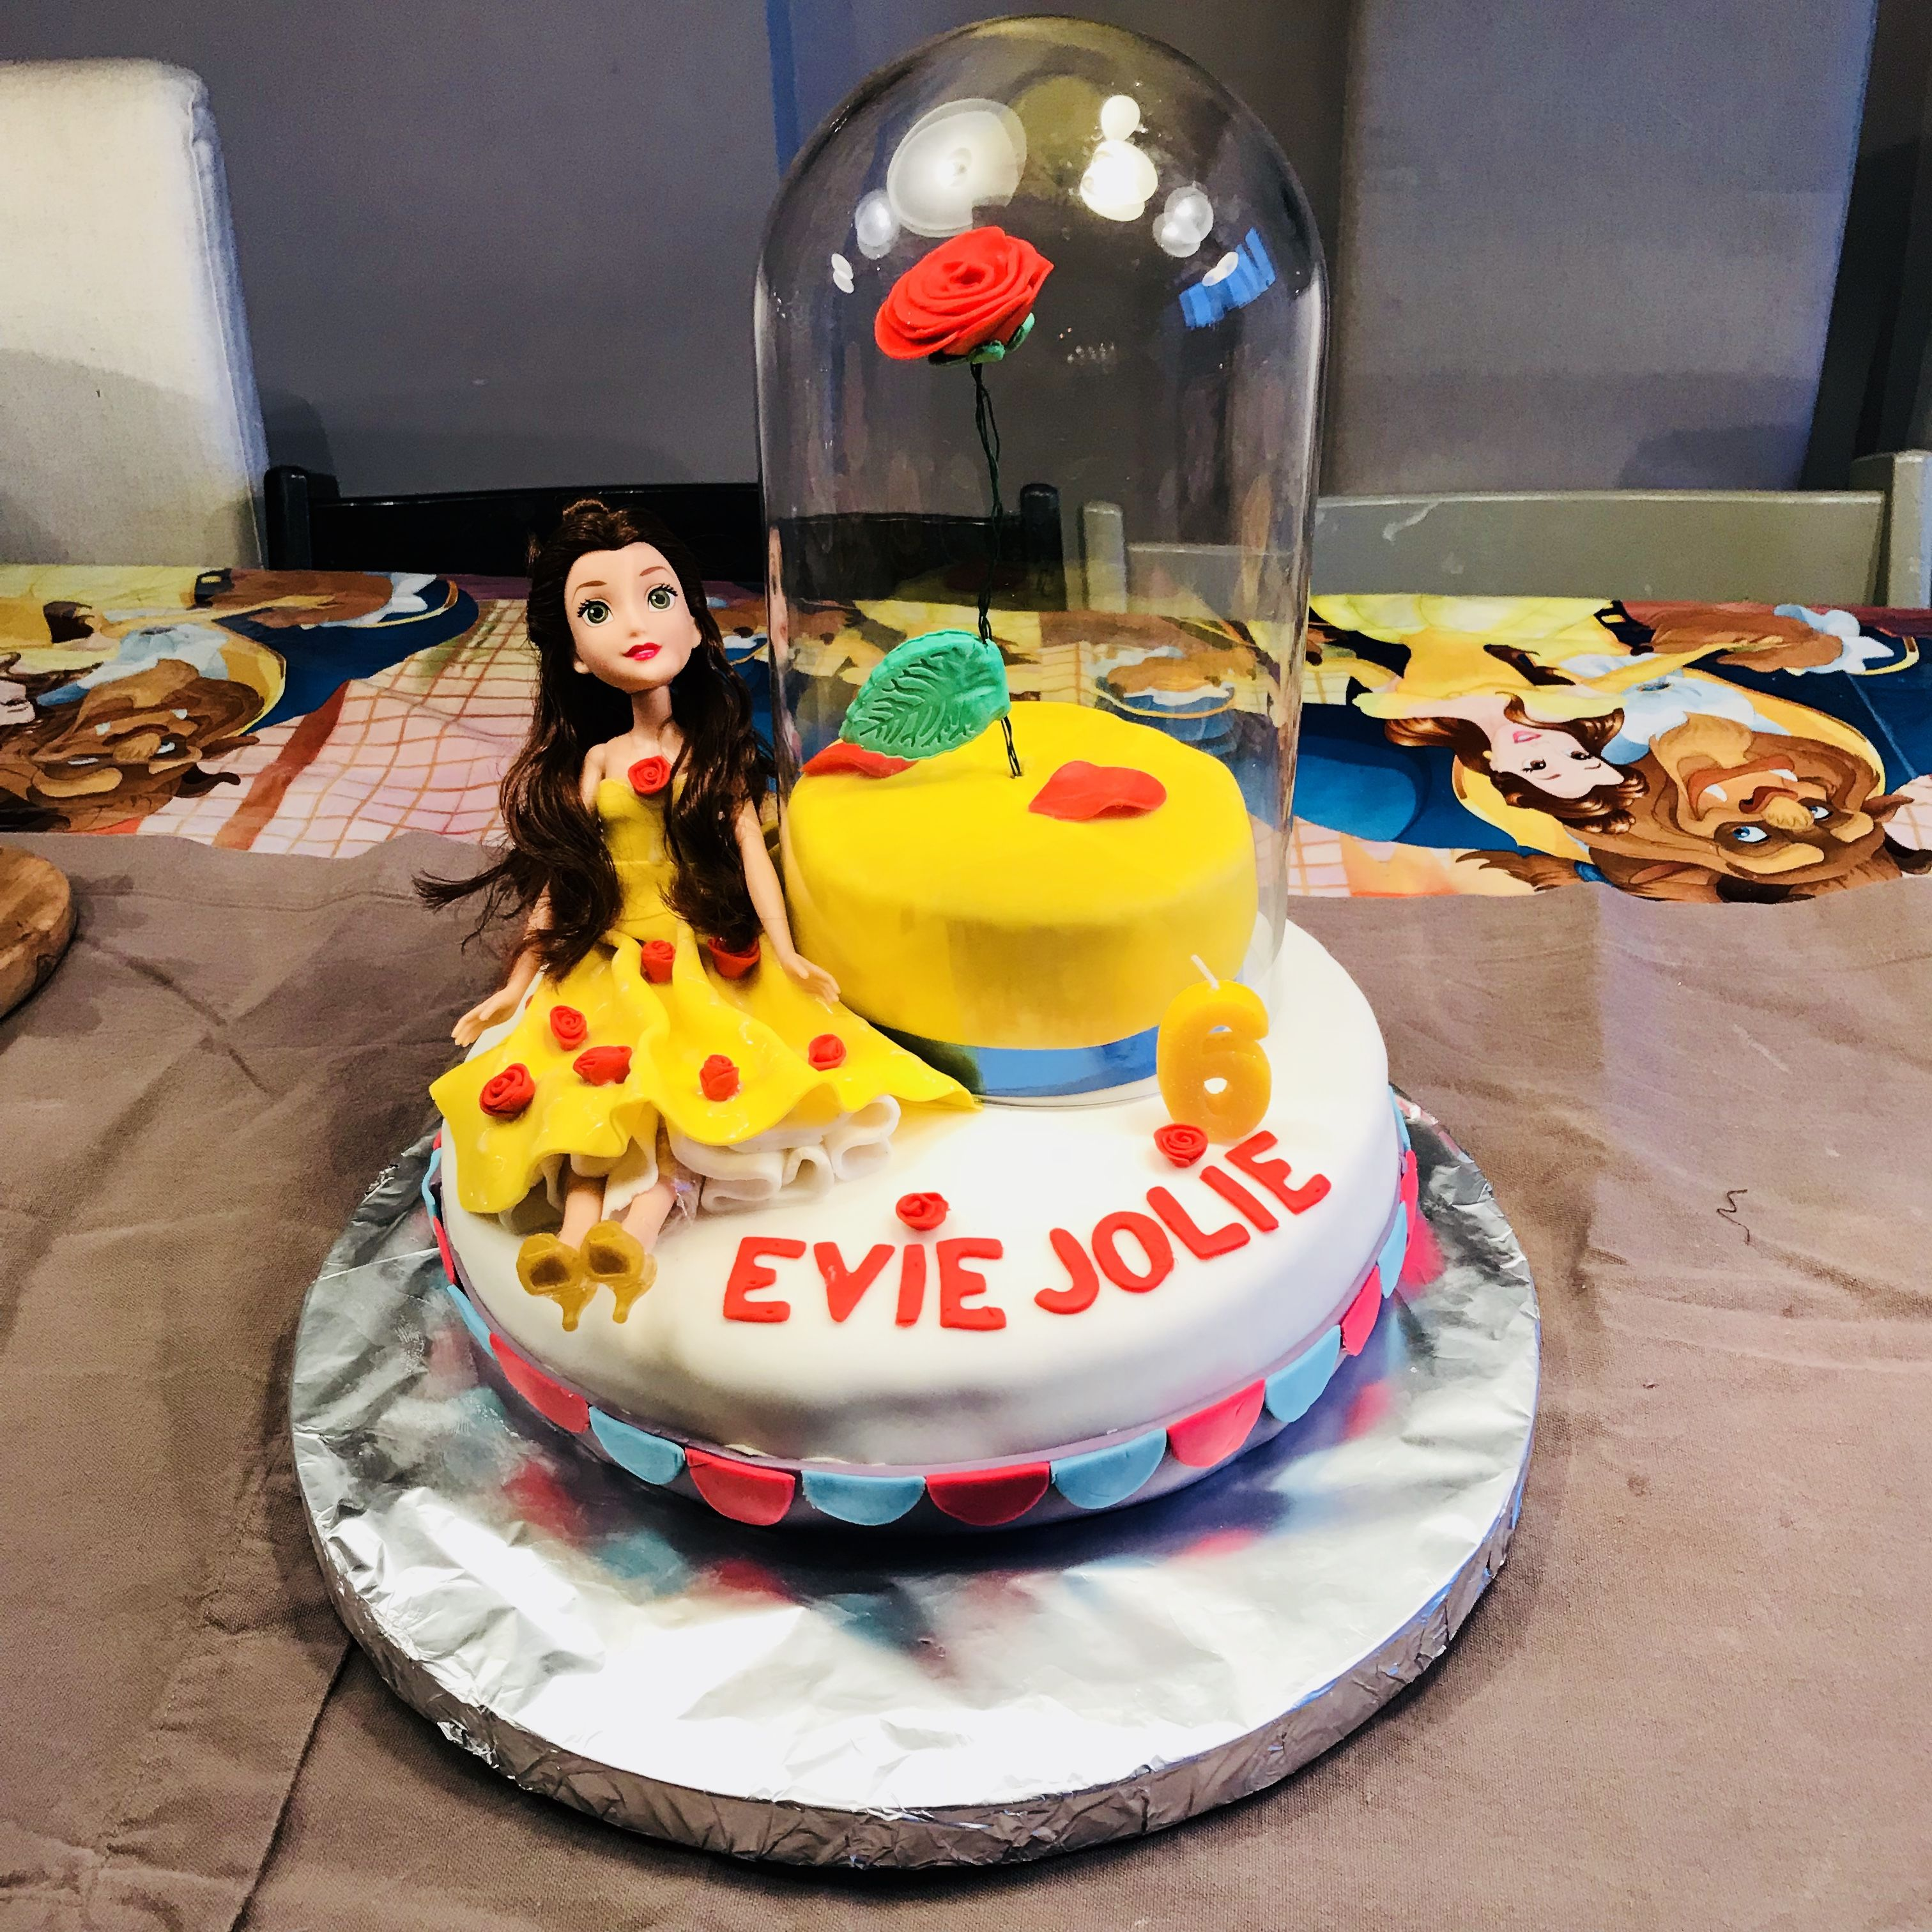 Belle Beauty and the beast toddler birthday cake idea tobradov EJ